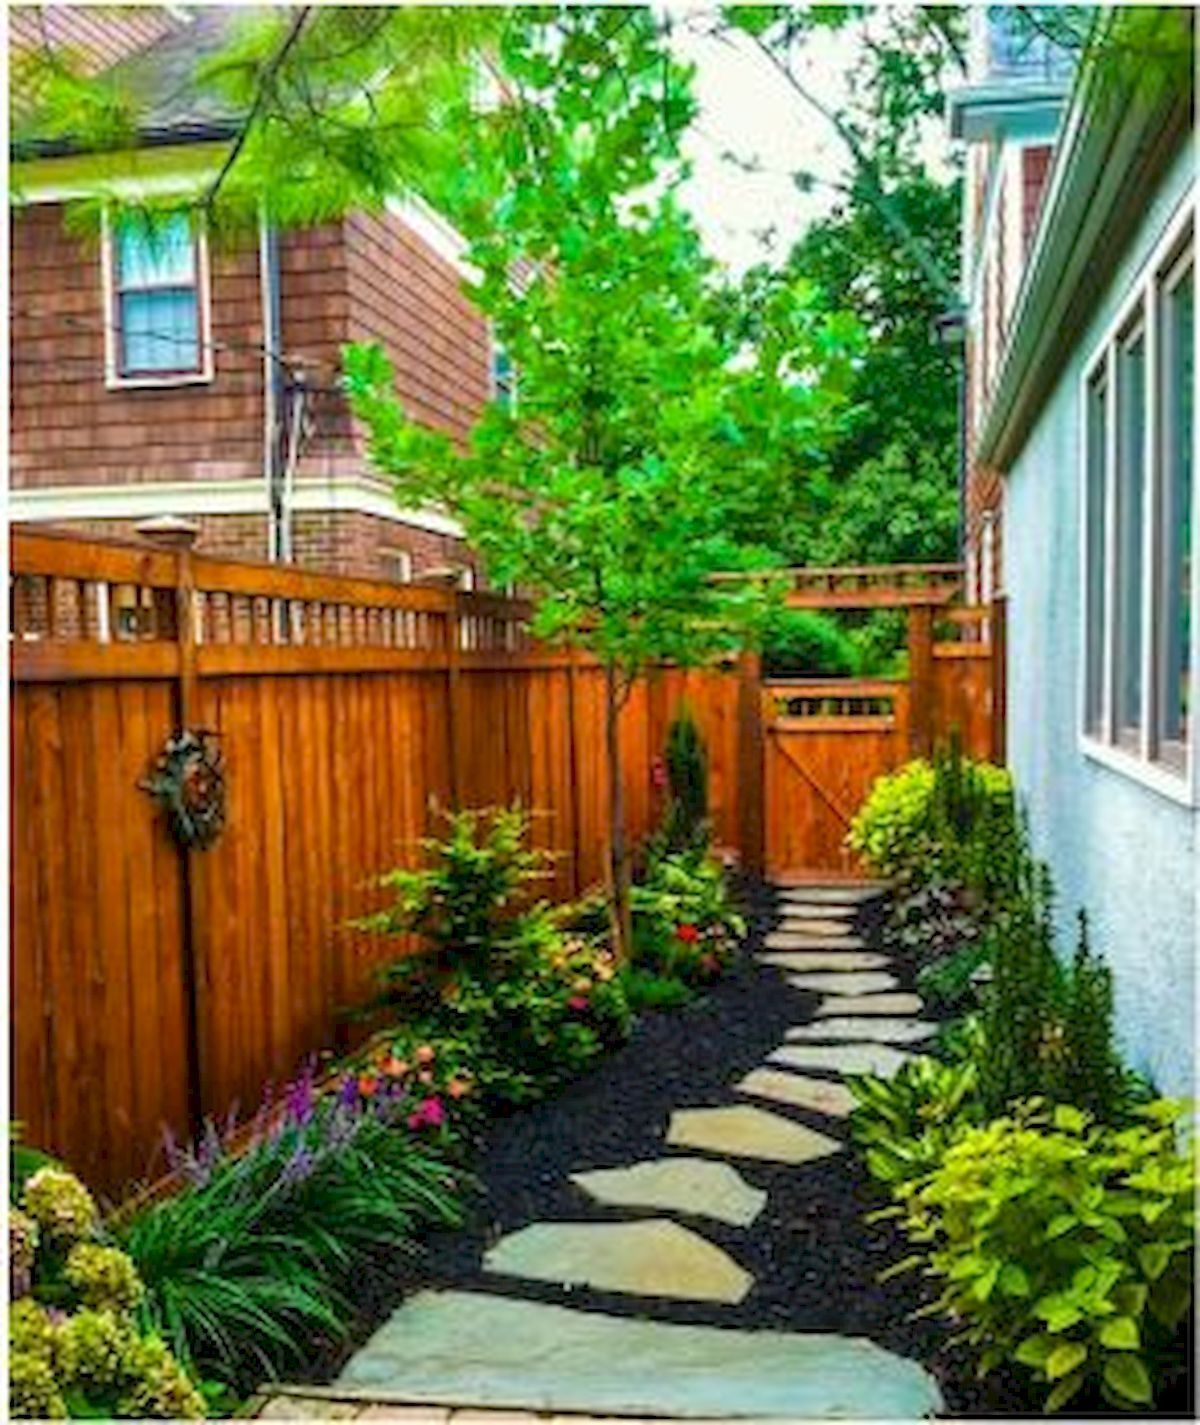 Best Small Backyard Landscaping Ideas And Design On A Budget Side Yard Landscaping Backyard Landscaping Designs Small Backyard Landscaping